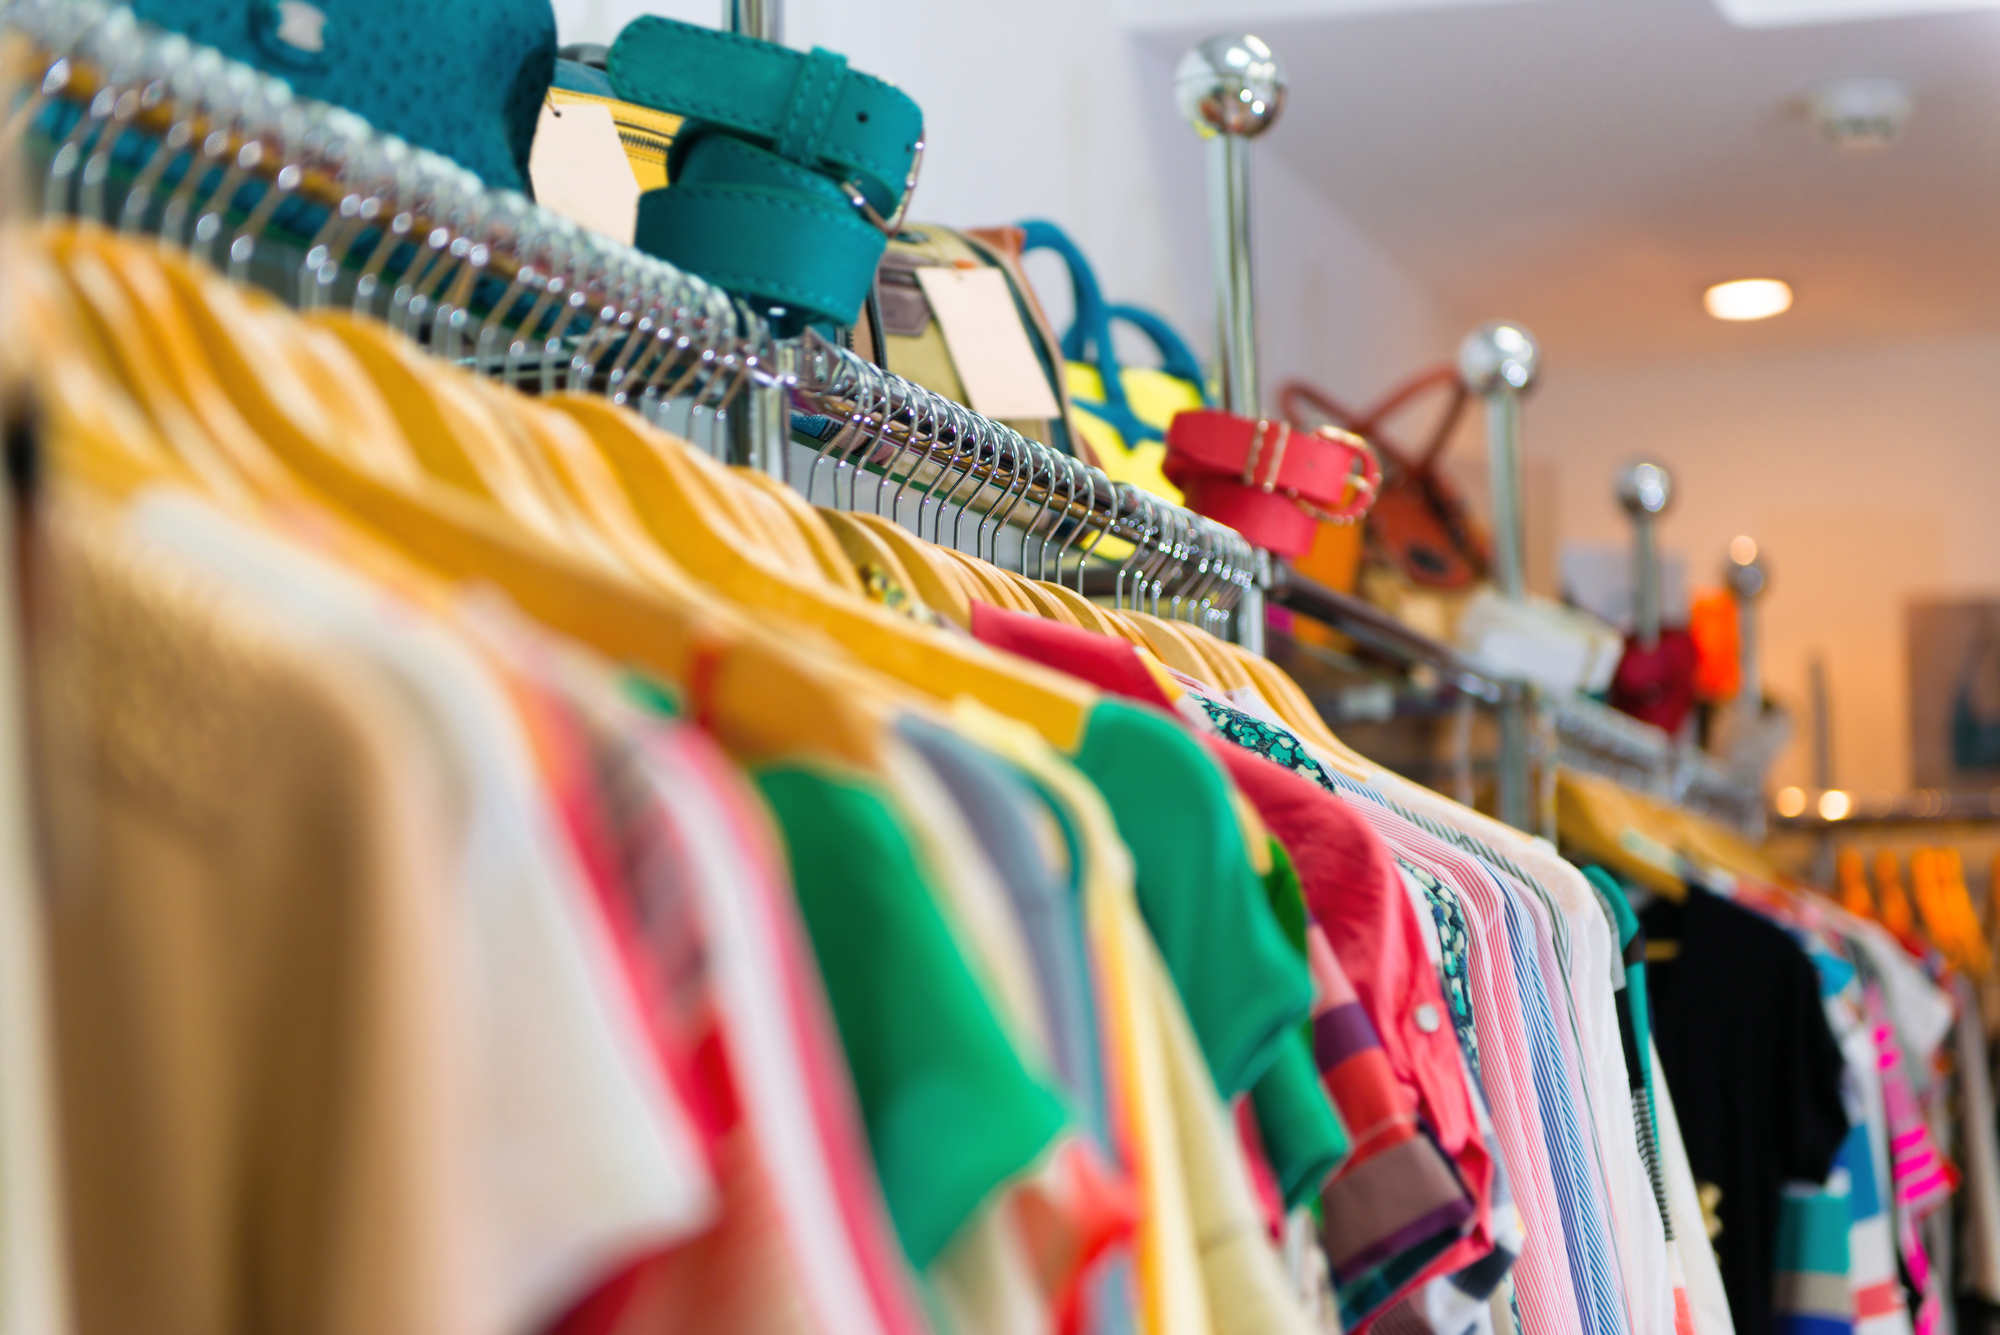 Clothing Drive to Take Place Just in Time for Back to School